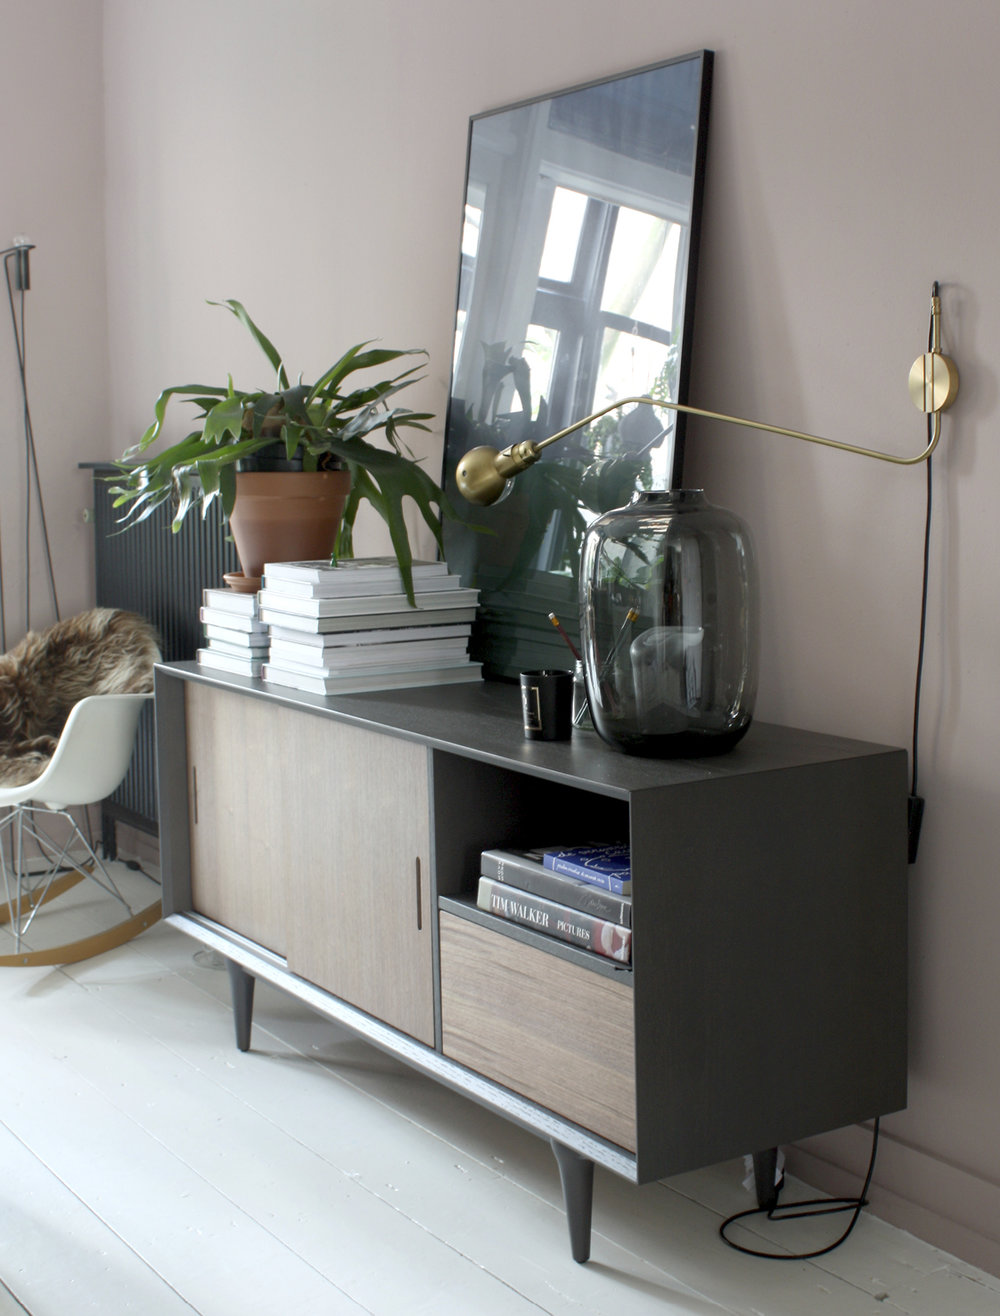 THE NICE STUFF COLLECTOR INTERIOR BLOG INTERIEUR BLOG THEO-BERT POT NETHERLANDS HOLLAND BLOG BEELD STAAND RUIJCH__2.jpg